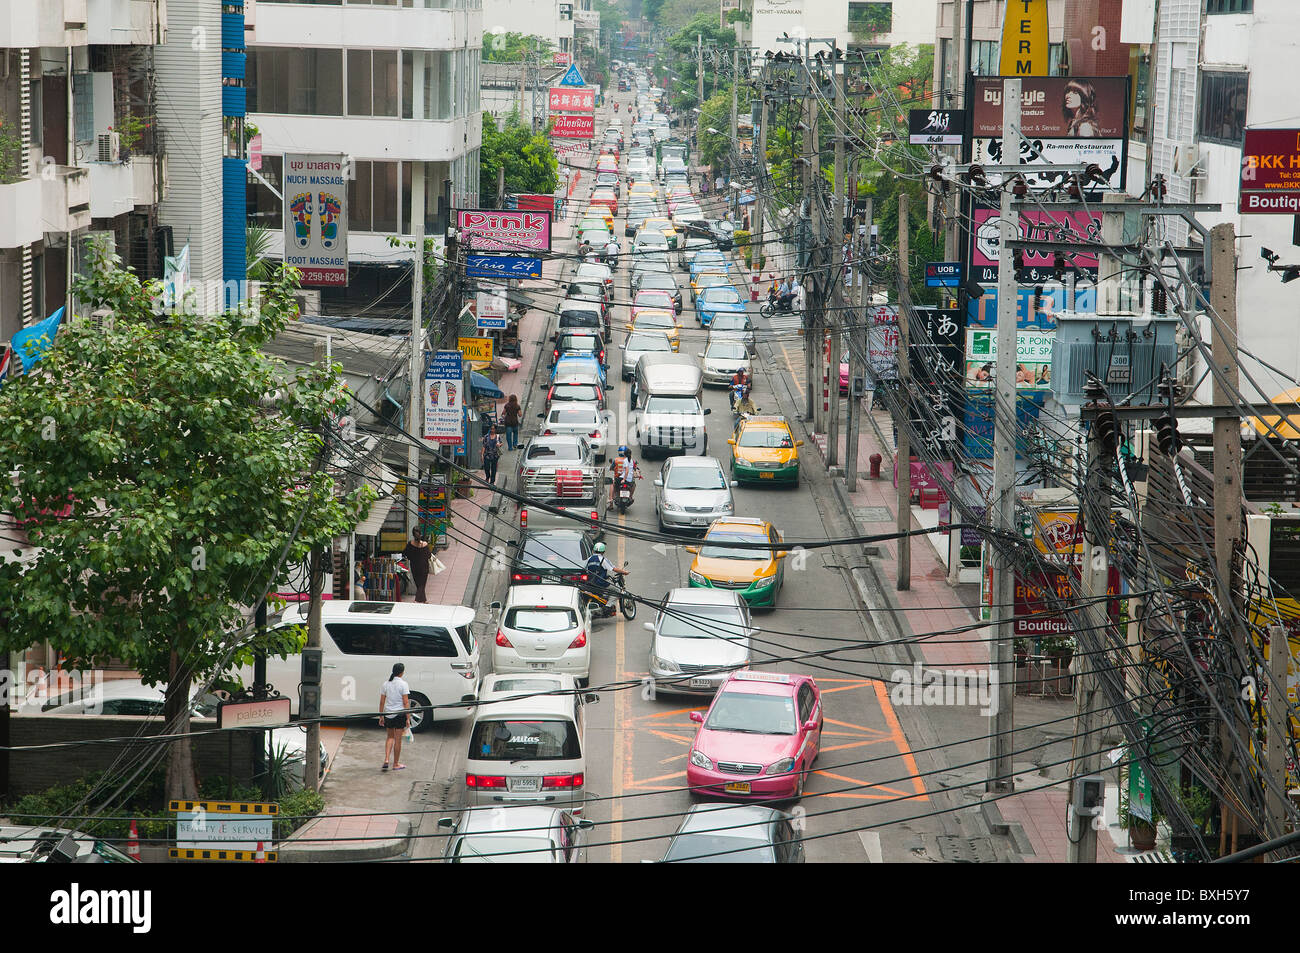 rush hour traffic in front of MBK in Bangkok, Thailand - Stock Image